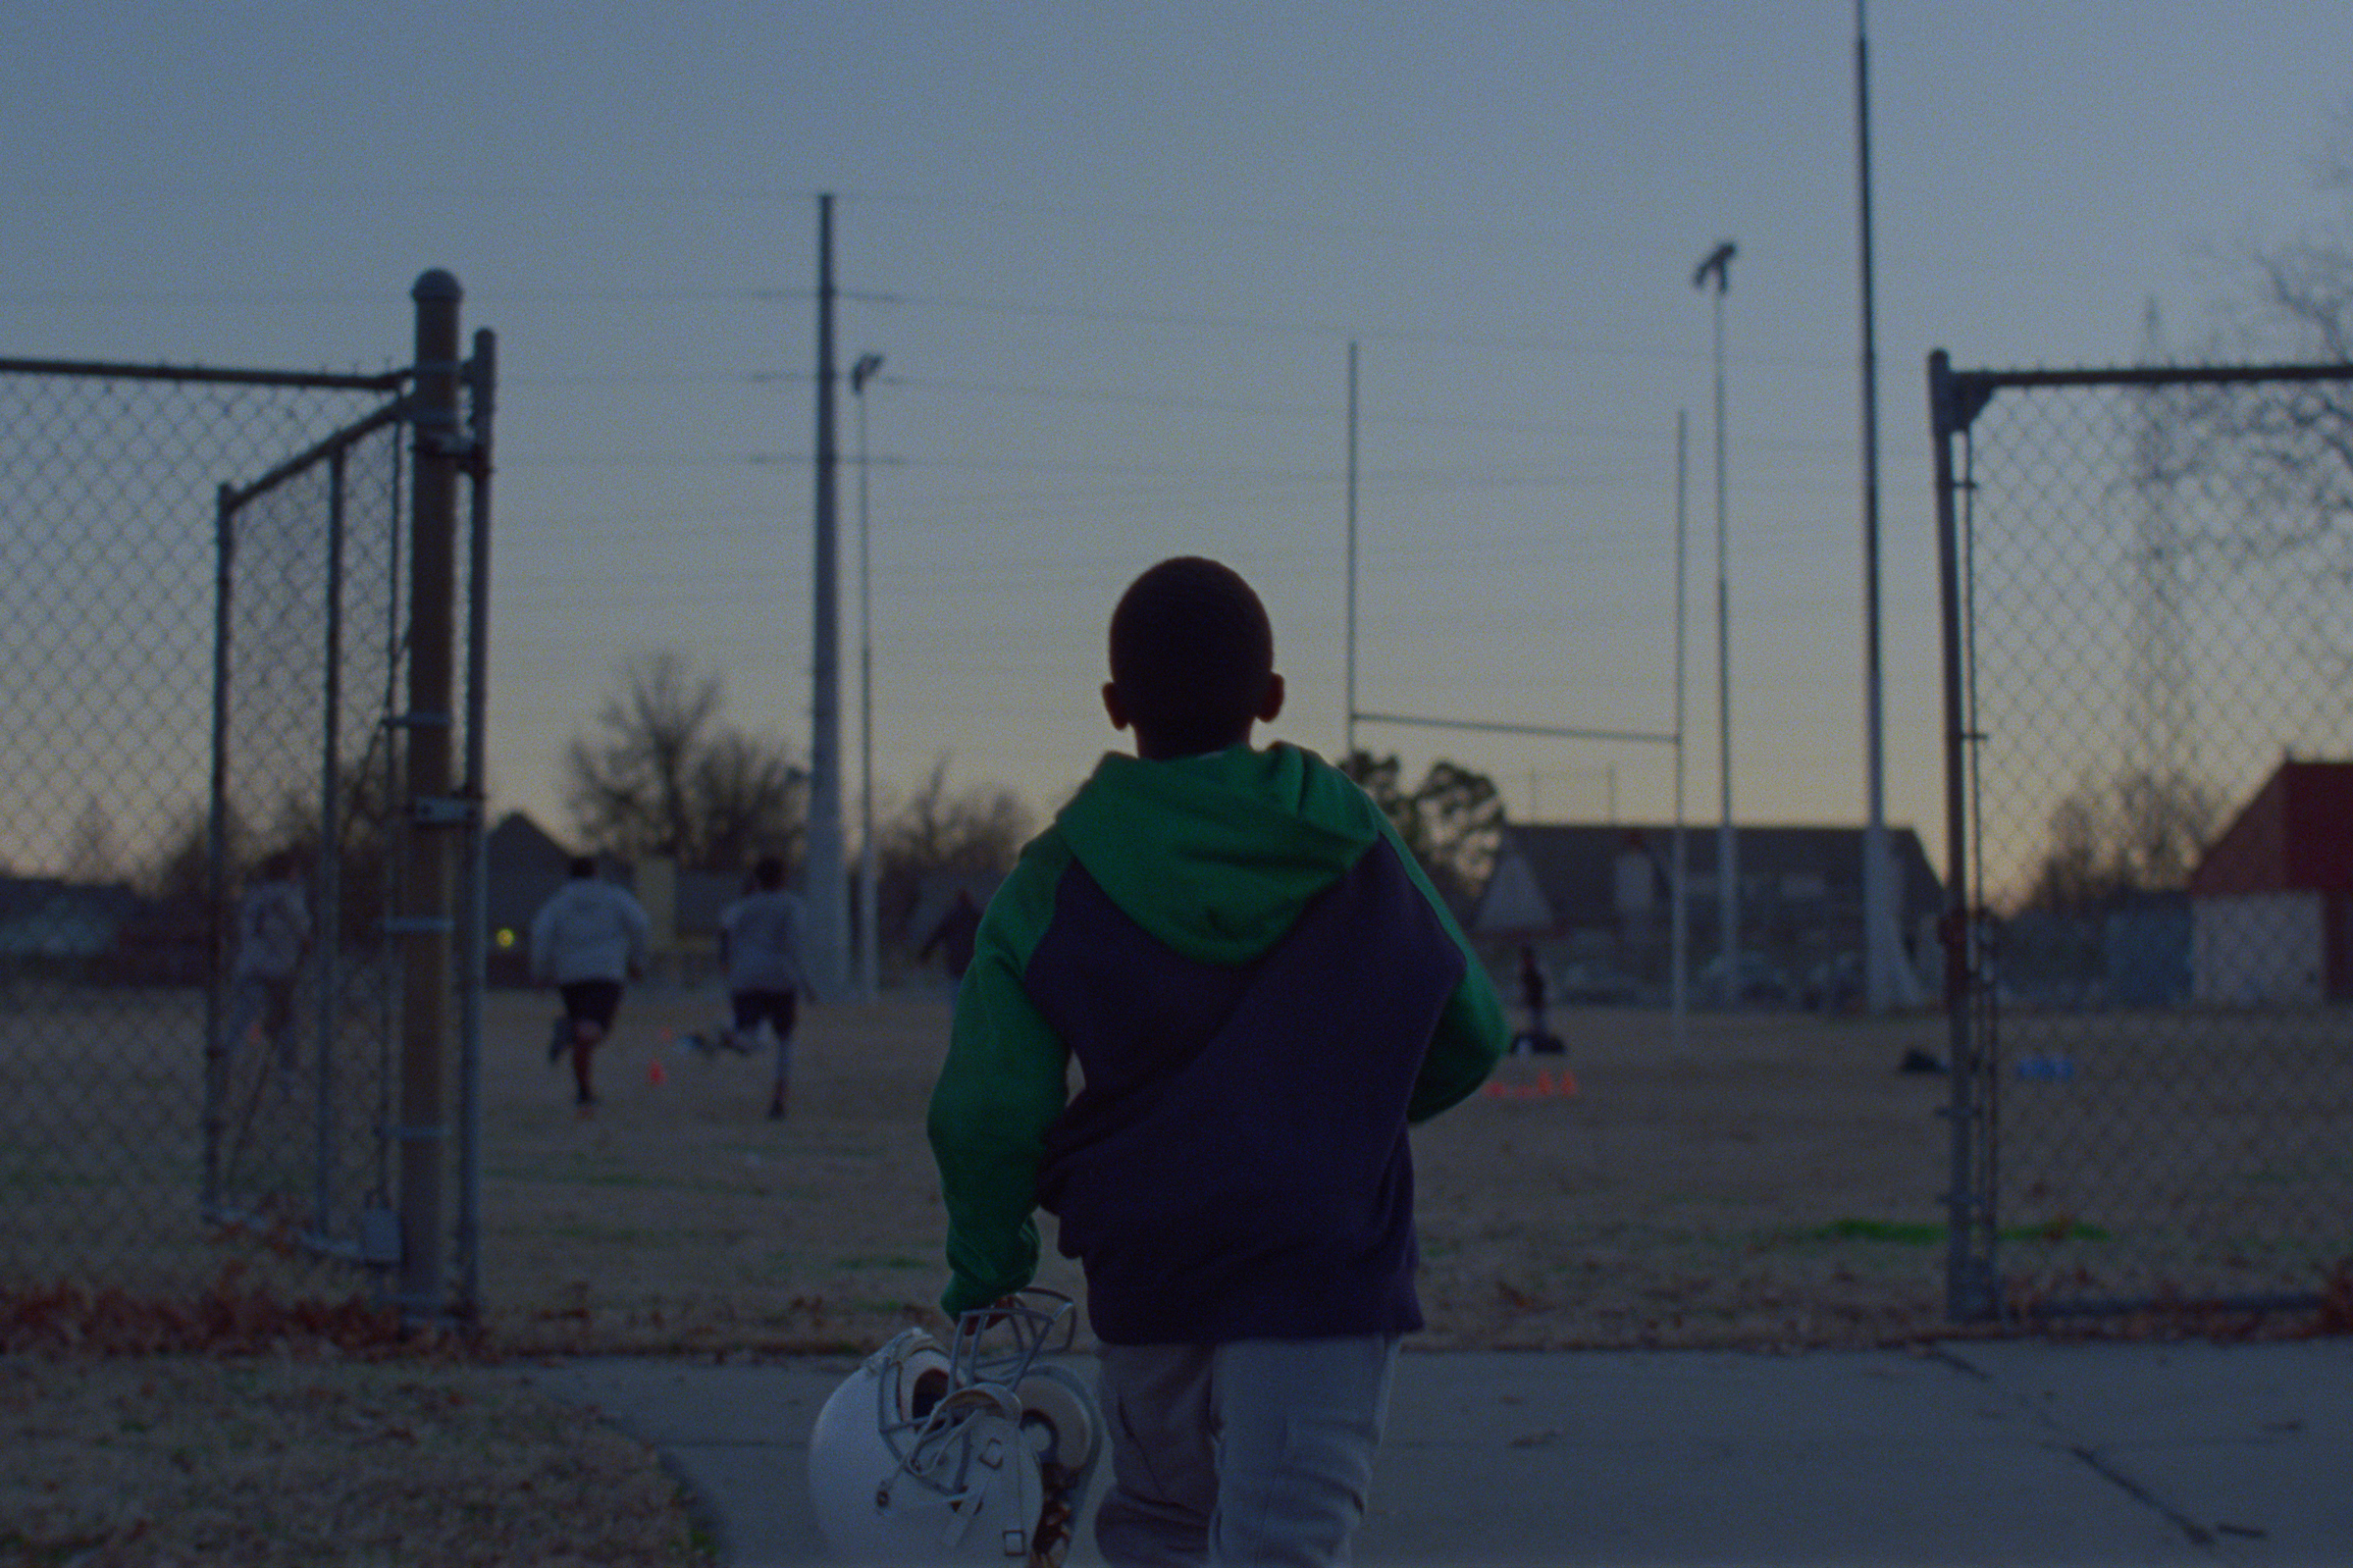 Kia's Super Bowl ad shows NFL star Josh Jacobs talking to his younger self about growing up homeless